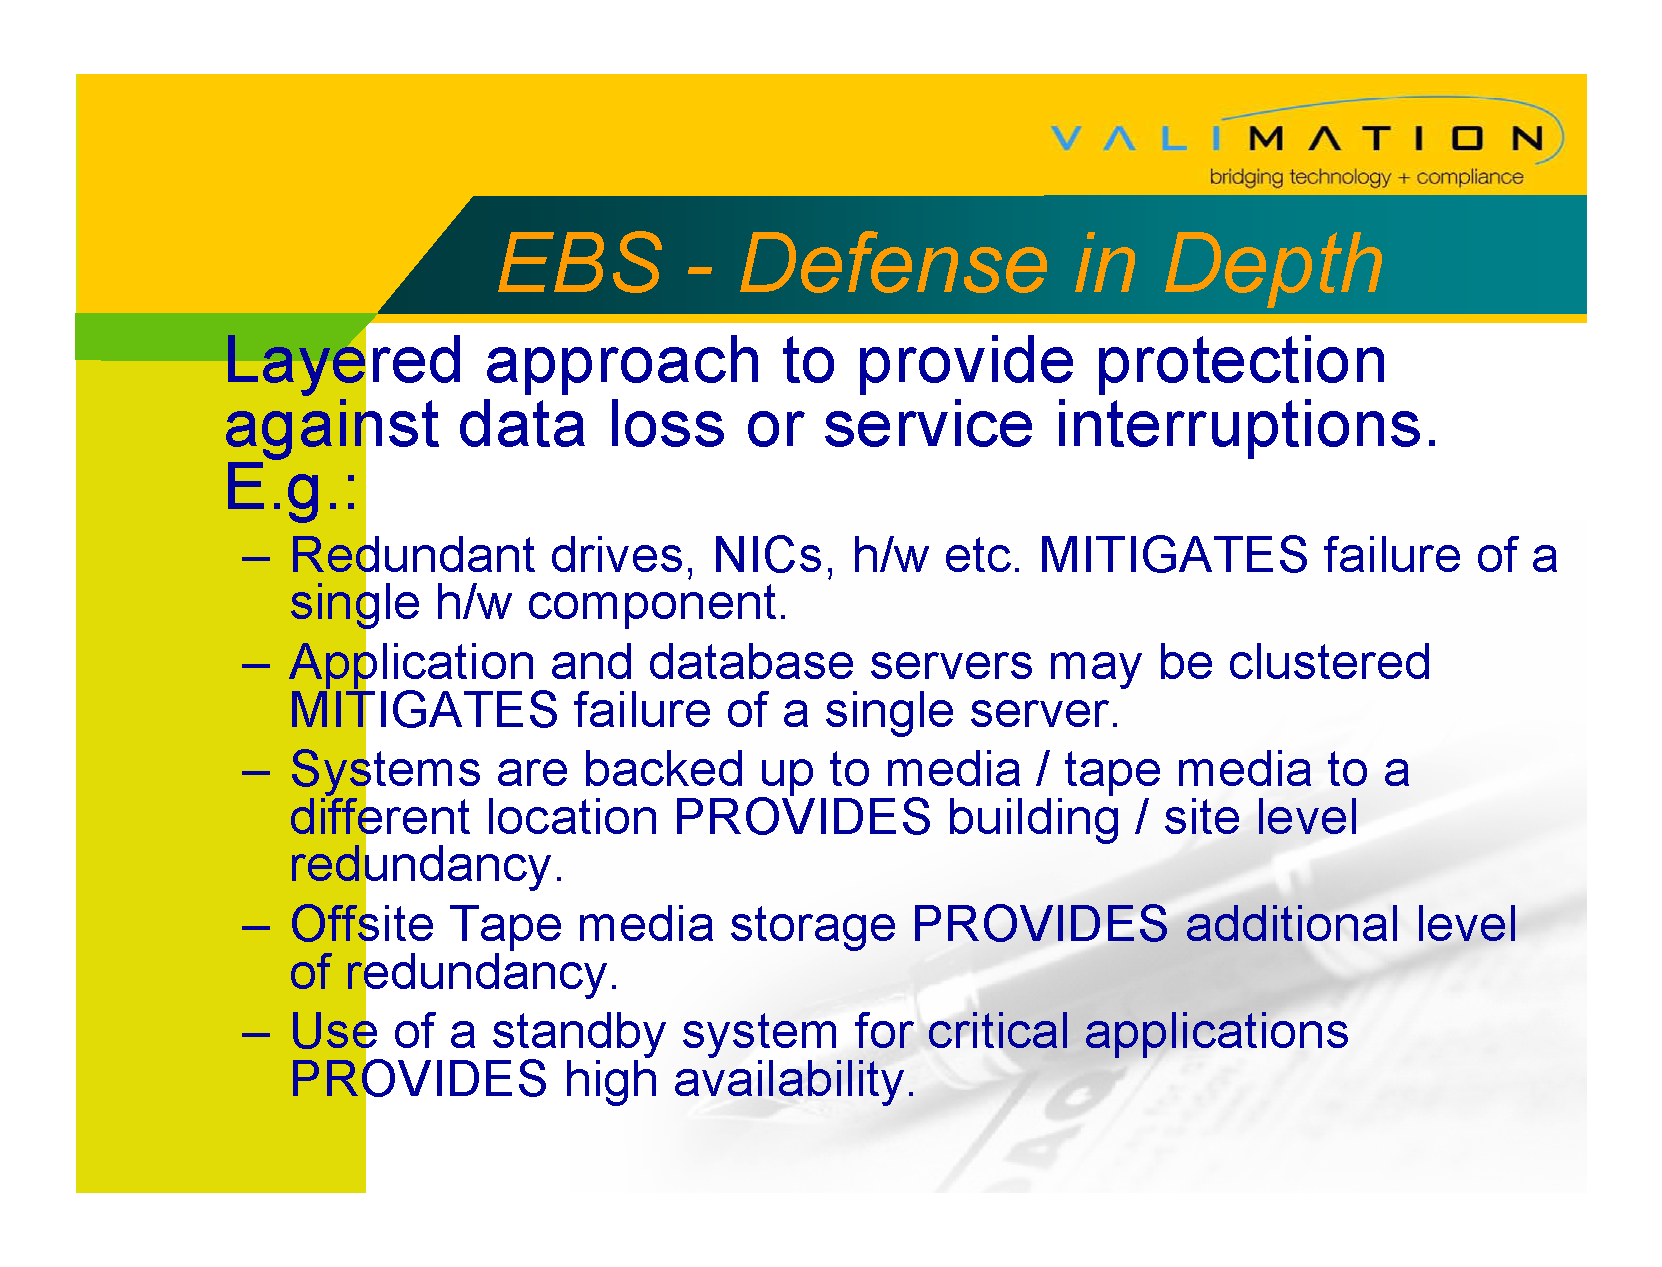 Validating an Enterprise Backup System by ValiMation_Page_11.png